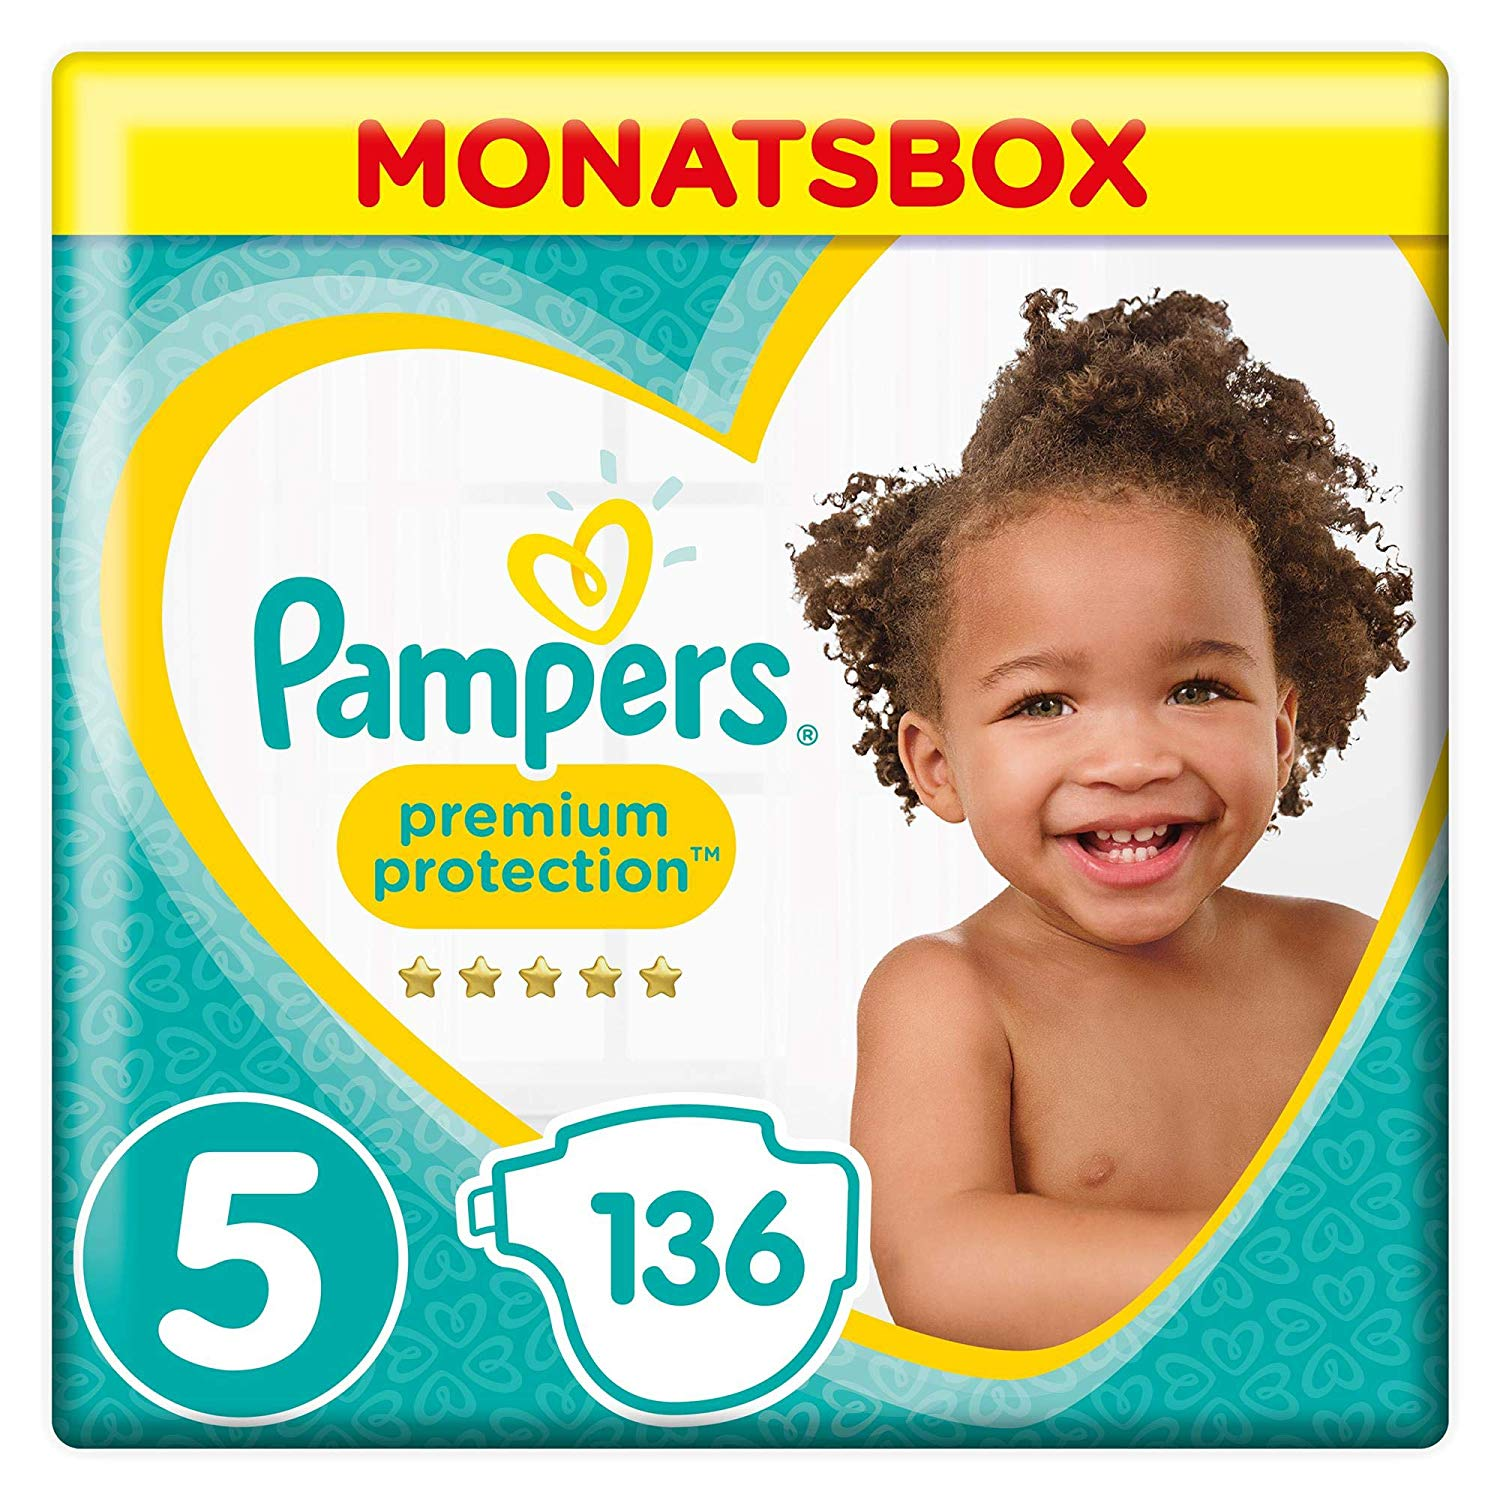 Pampers Windeln Vorteils-Set amazon